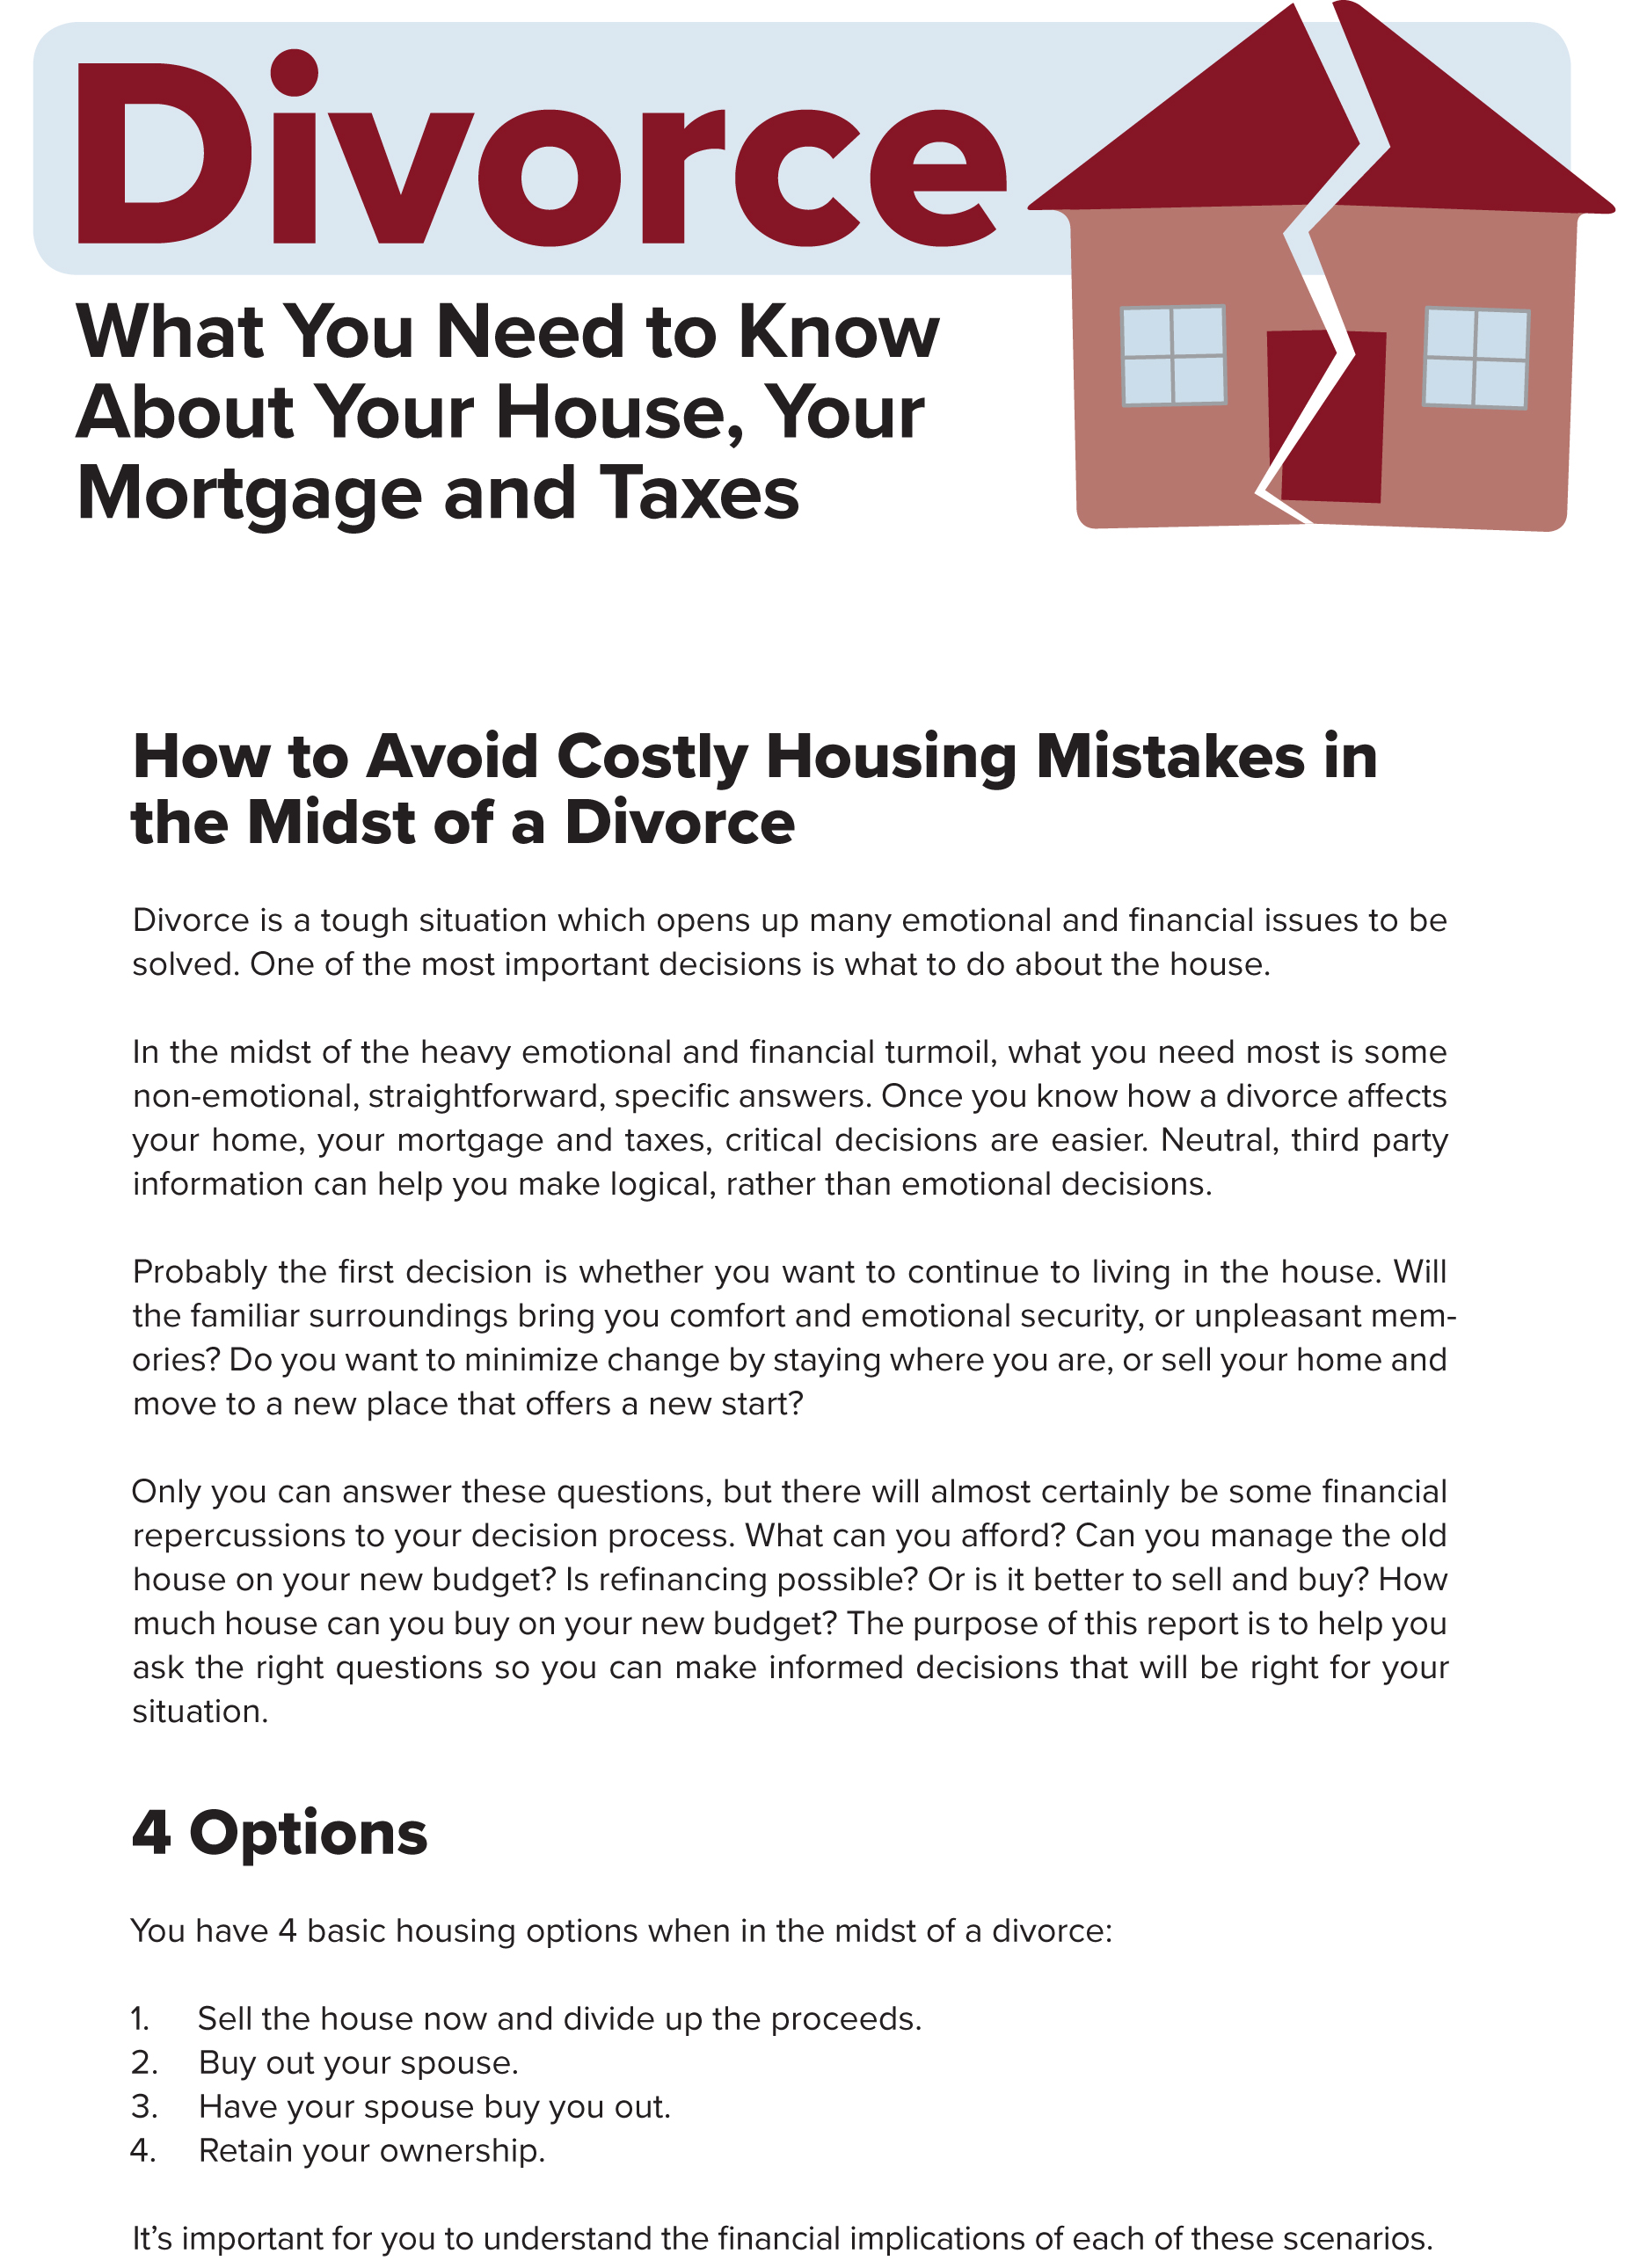 divorce and your home-1.jpg